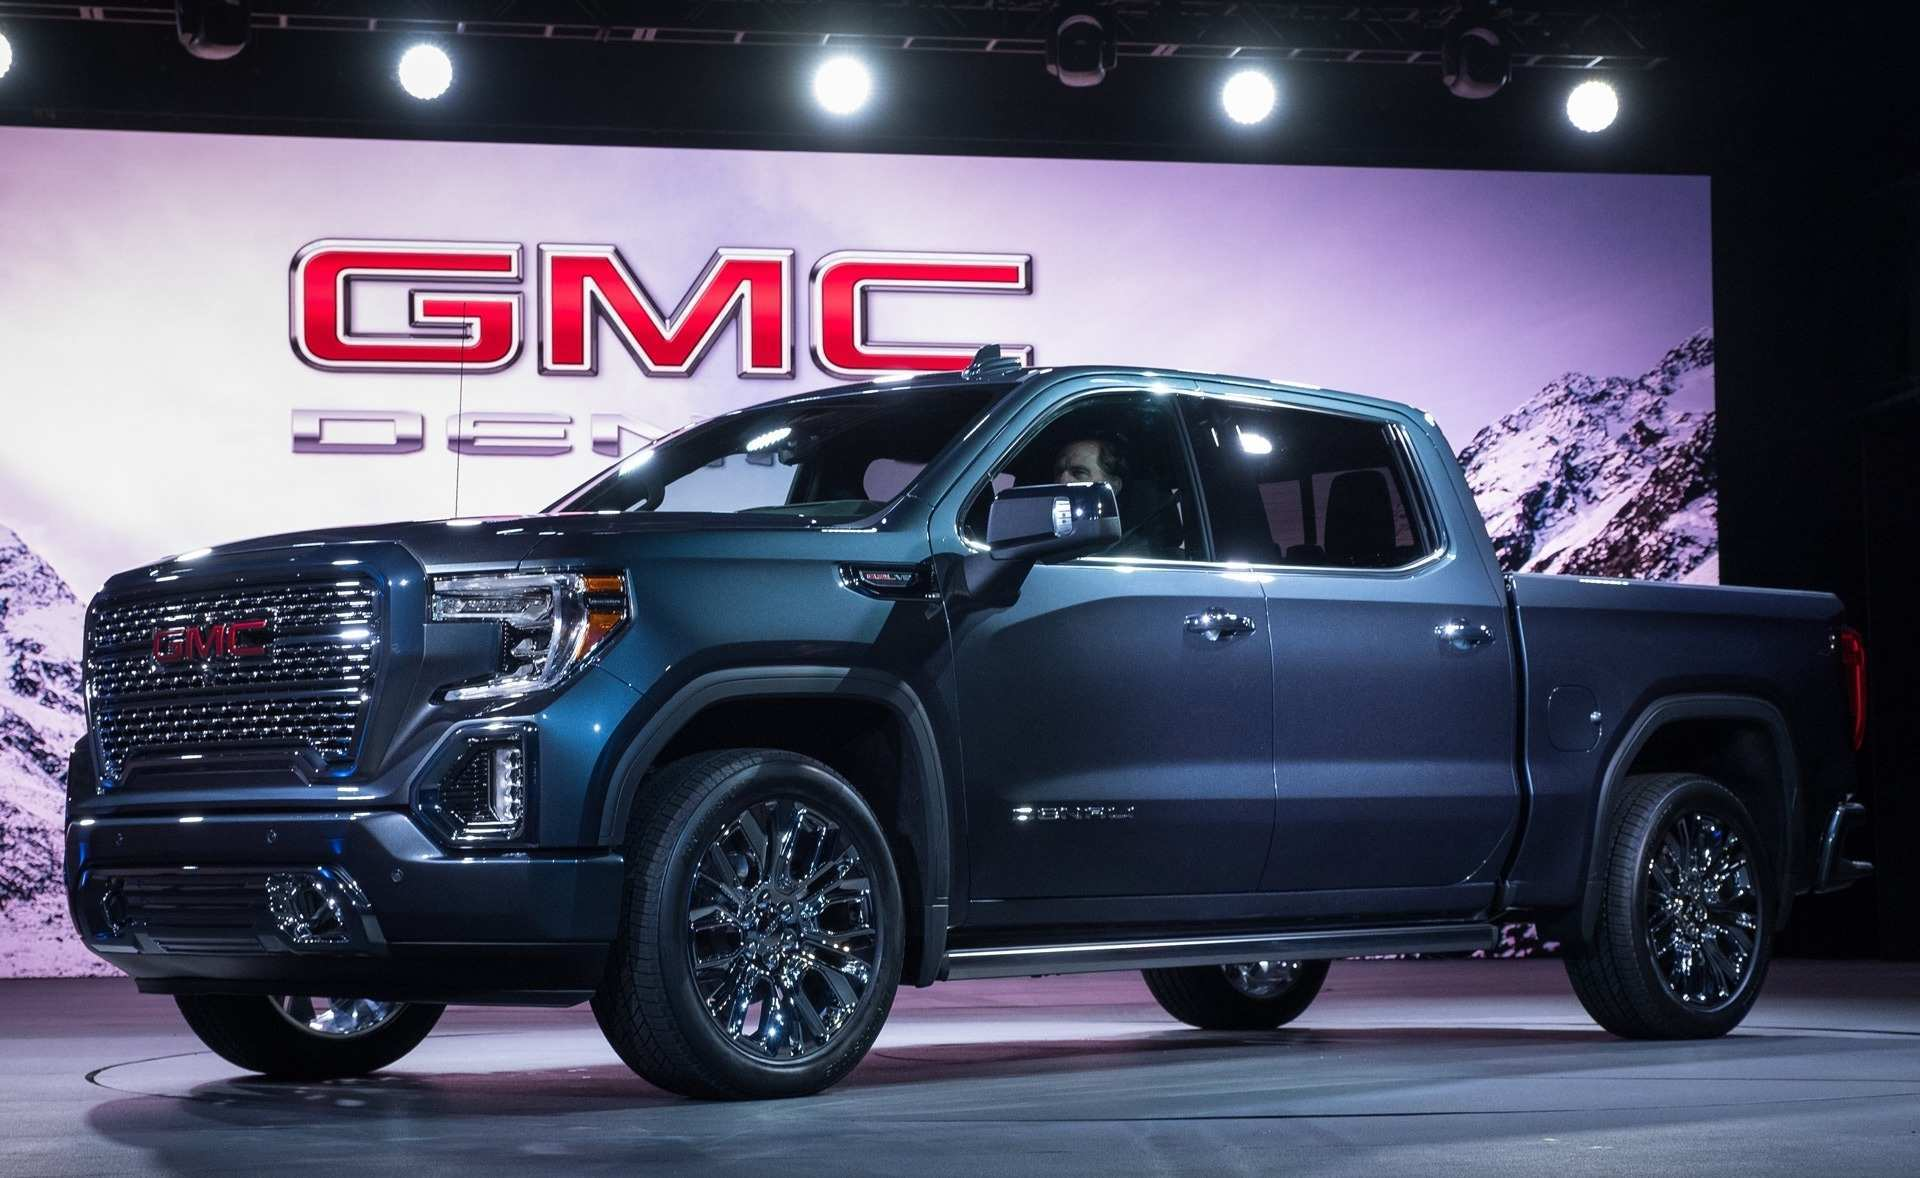 90 All New 2019 Gmc Concept Rumors with 2019 Gmc Concept